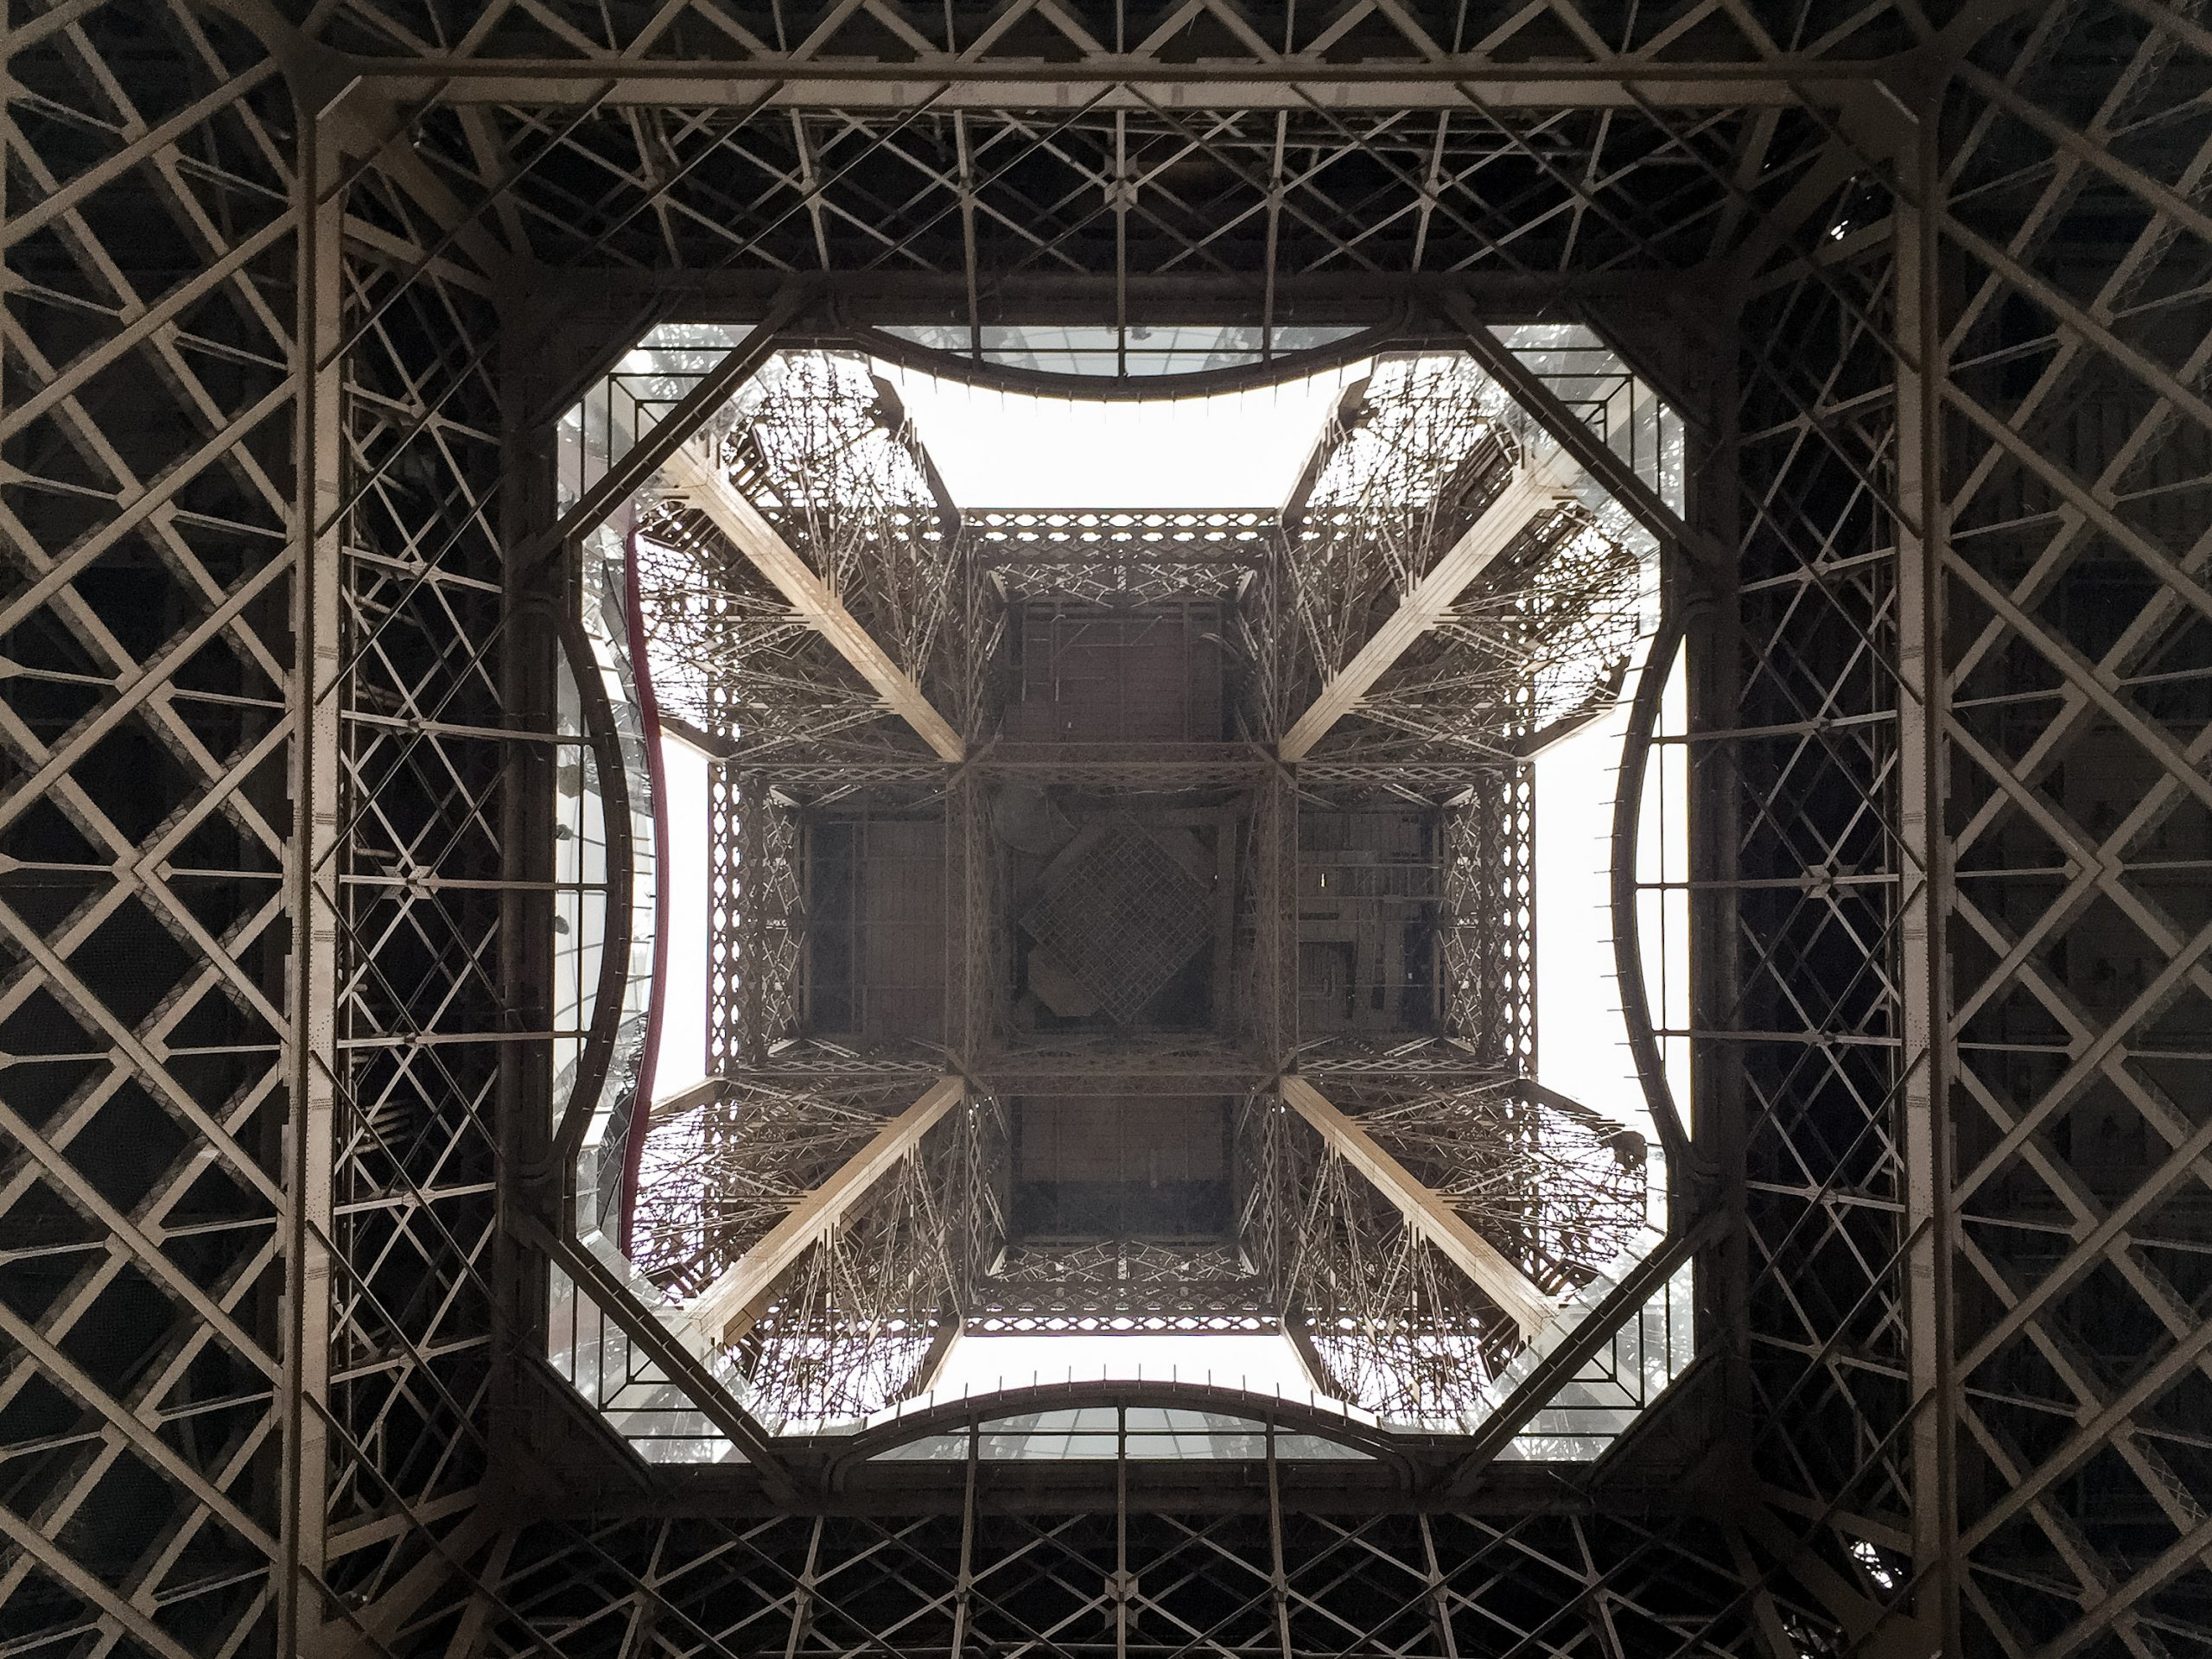 View of the underneath of the Eiffel Tower in Paris, France